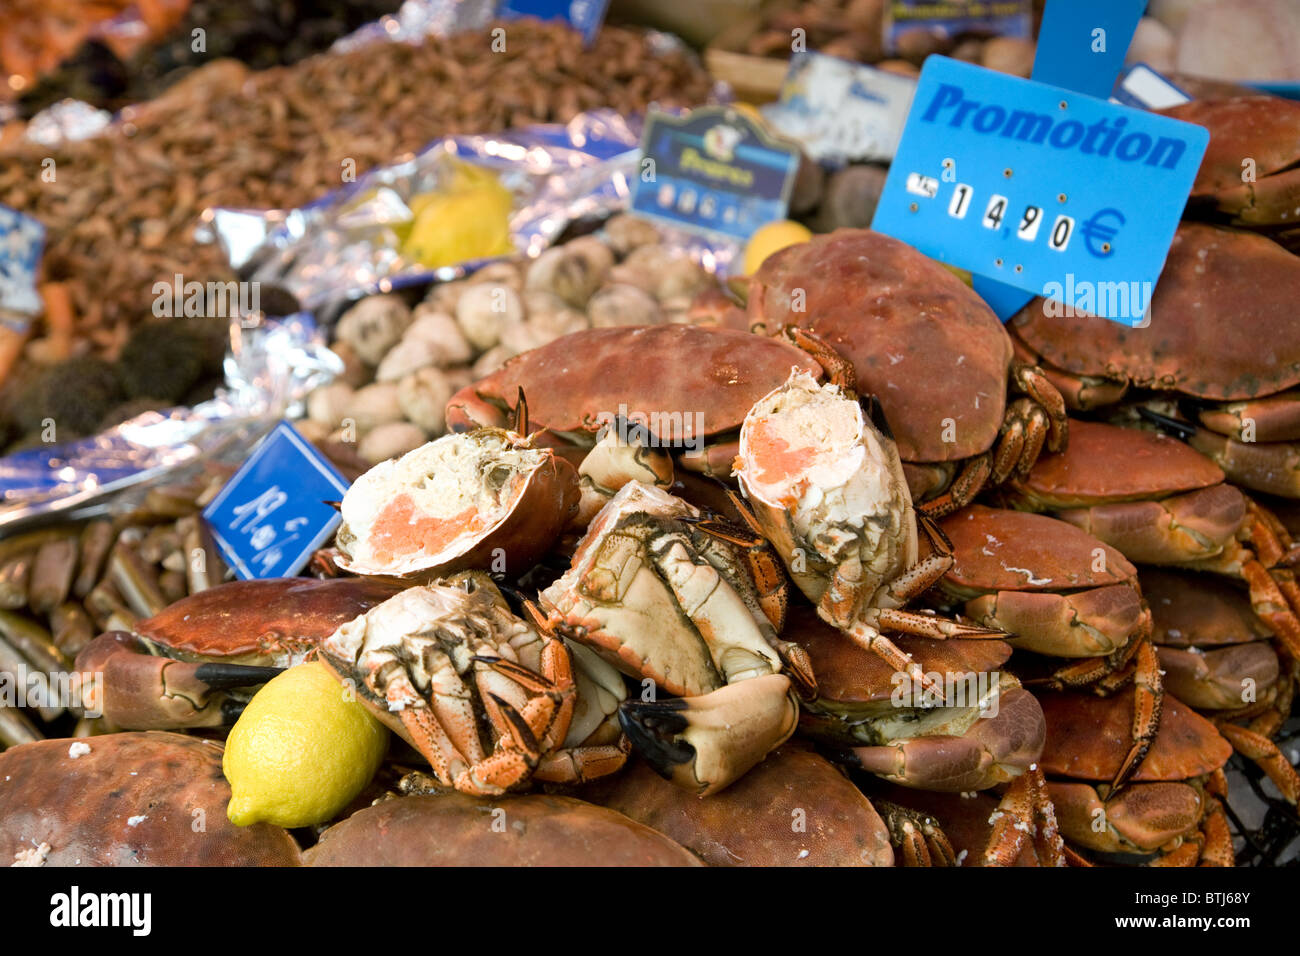 Crabs on a fish stall in the French market town of Coulommiers near Paris,  ile de france France - Stock Image